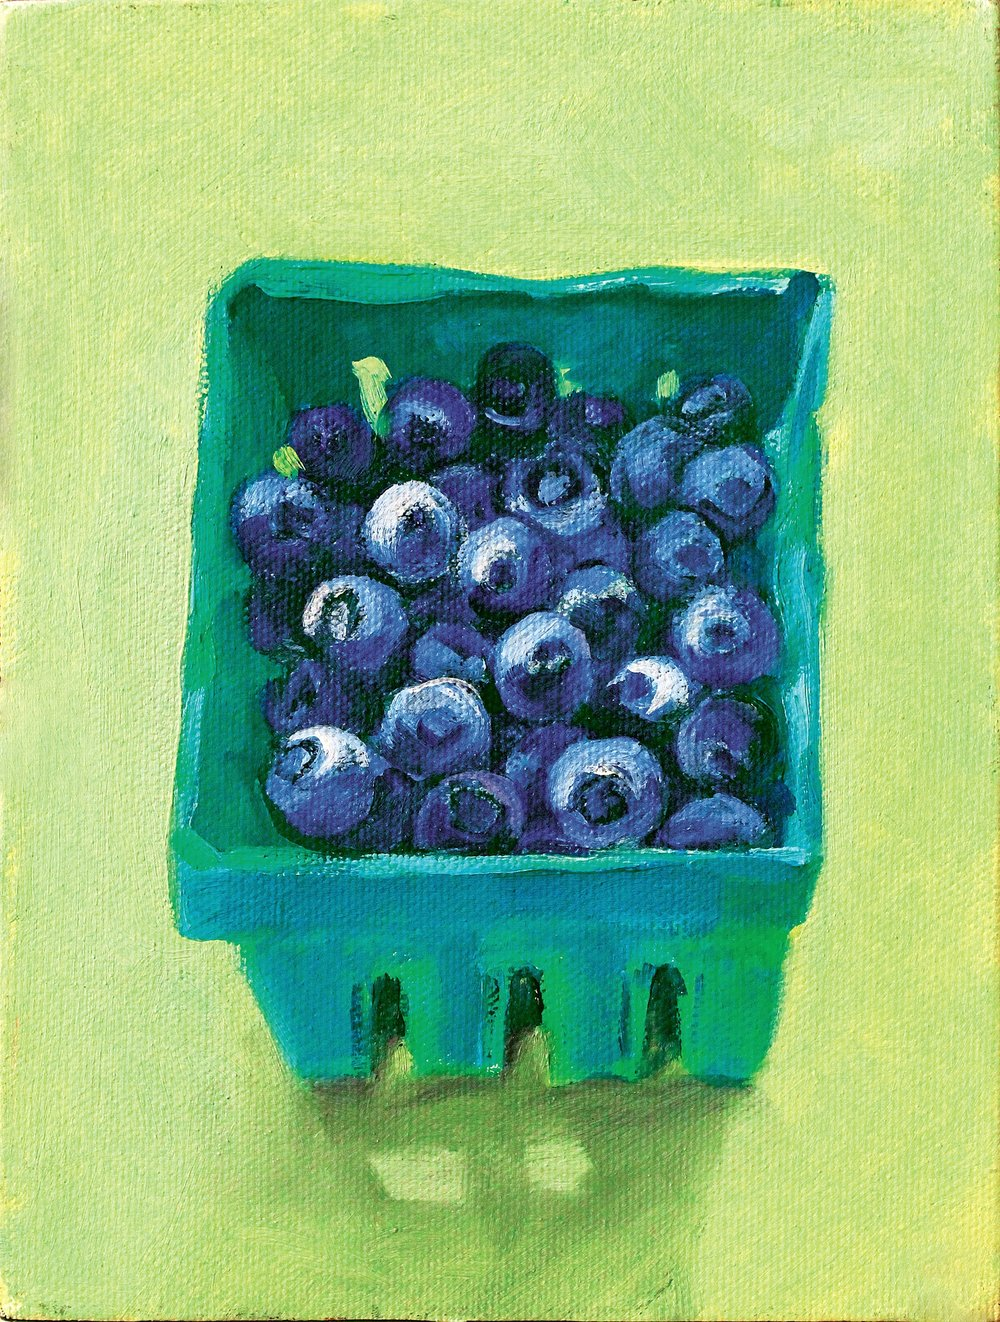 Blueberries on Bright Green